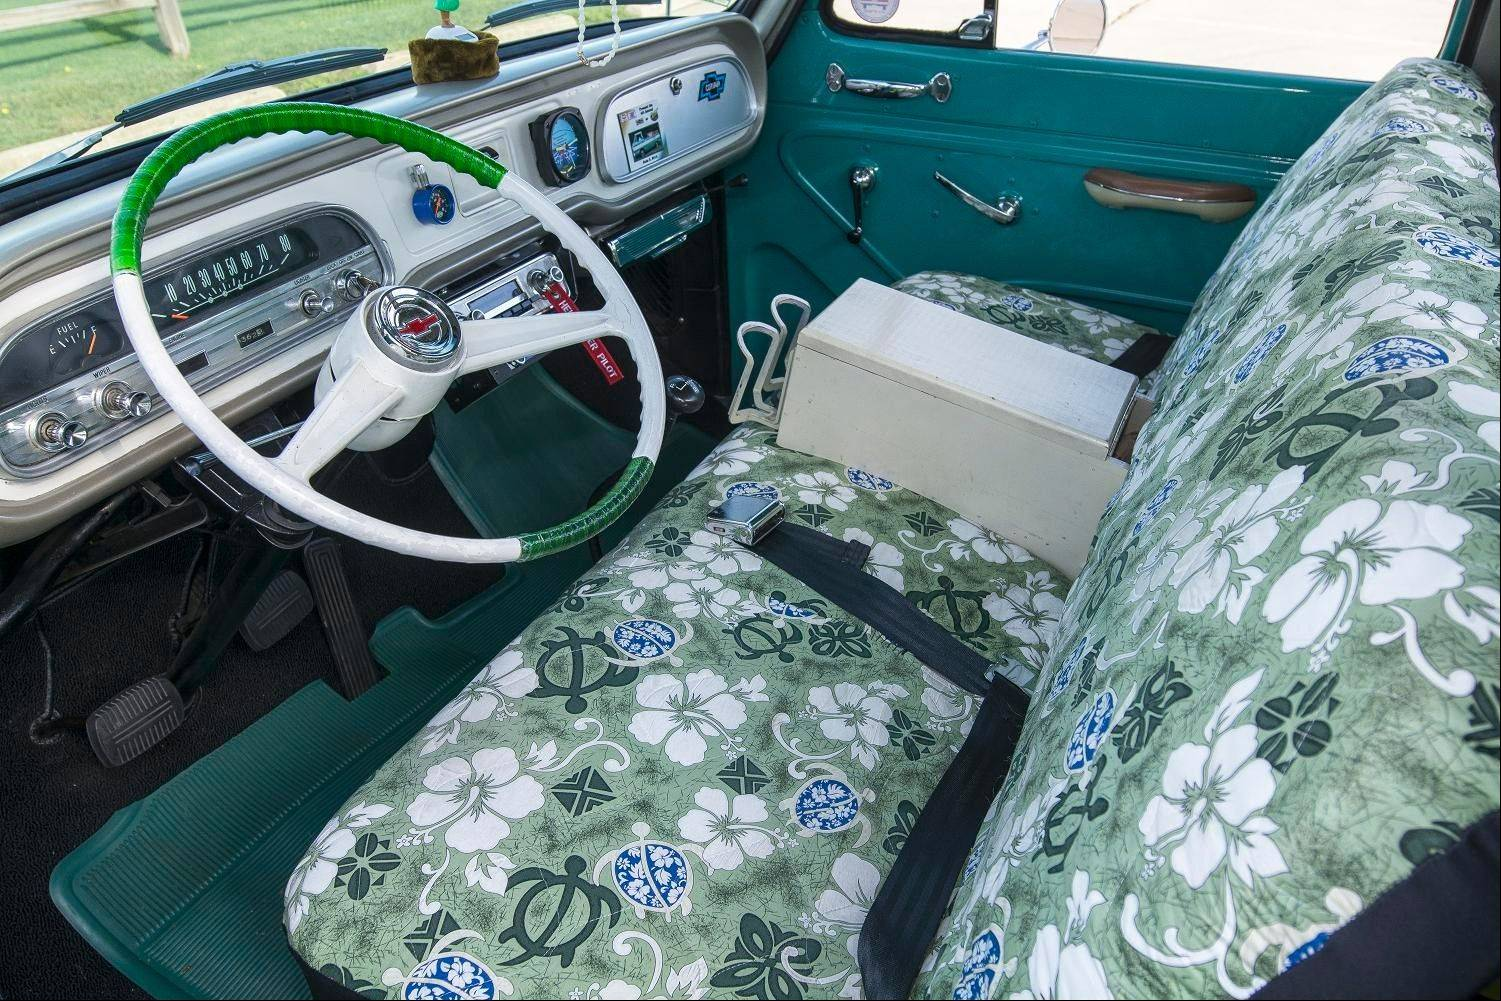 The new Glenwood Green paint carries over into the Corvair's interior.